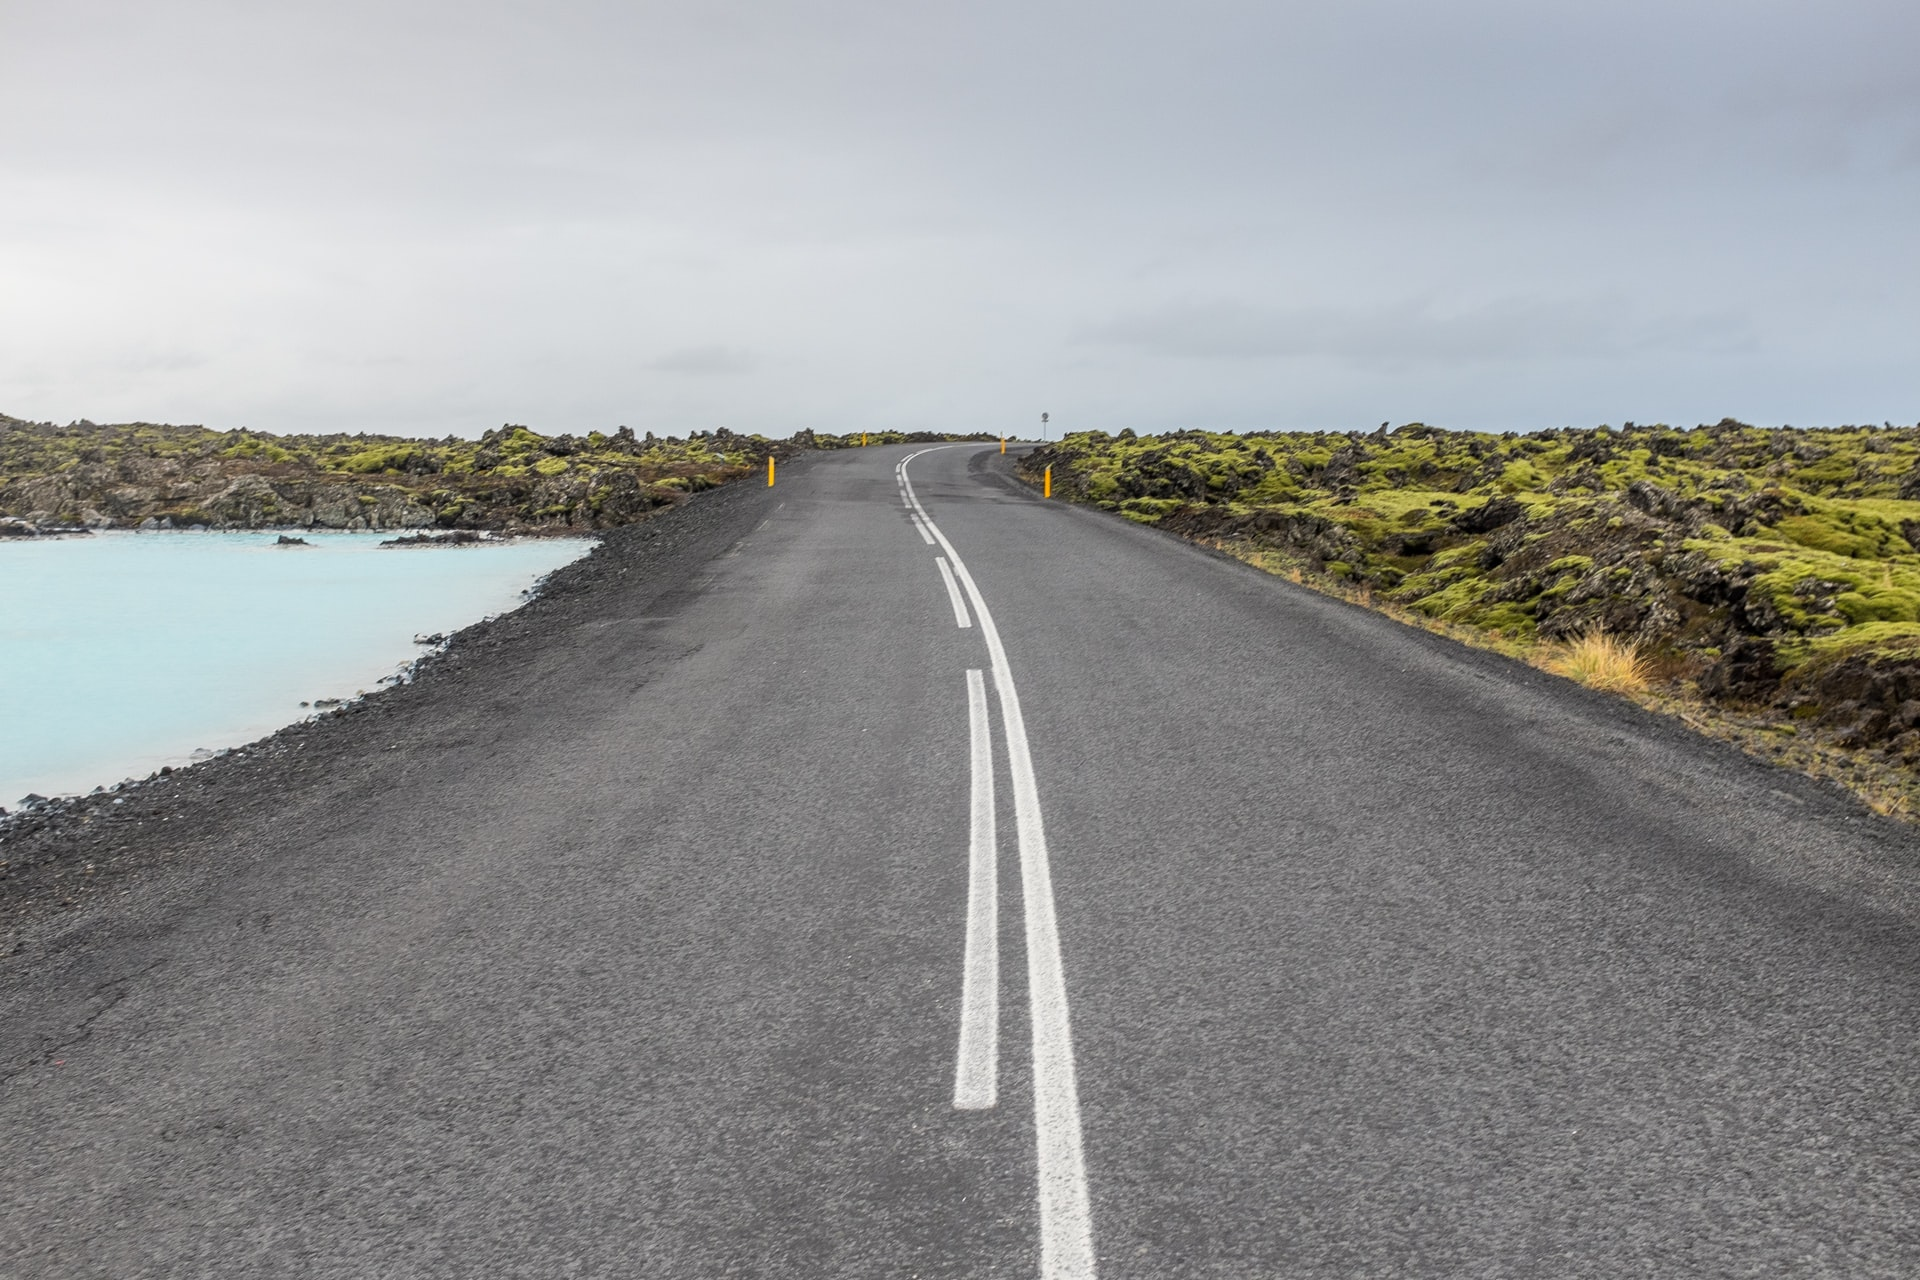 A concrete road between light blue water and flat mossy rocks under a dull sky